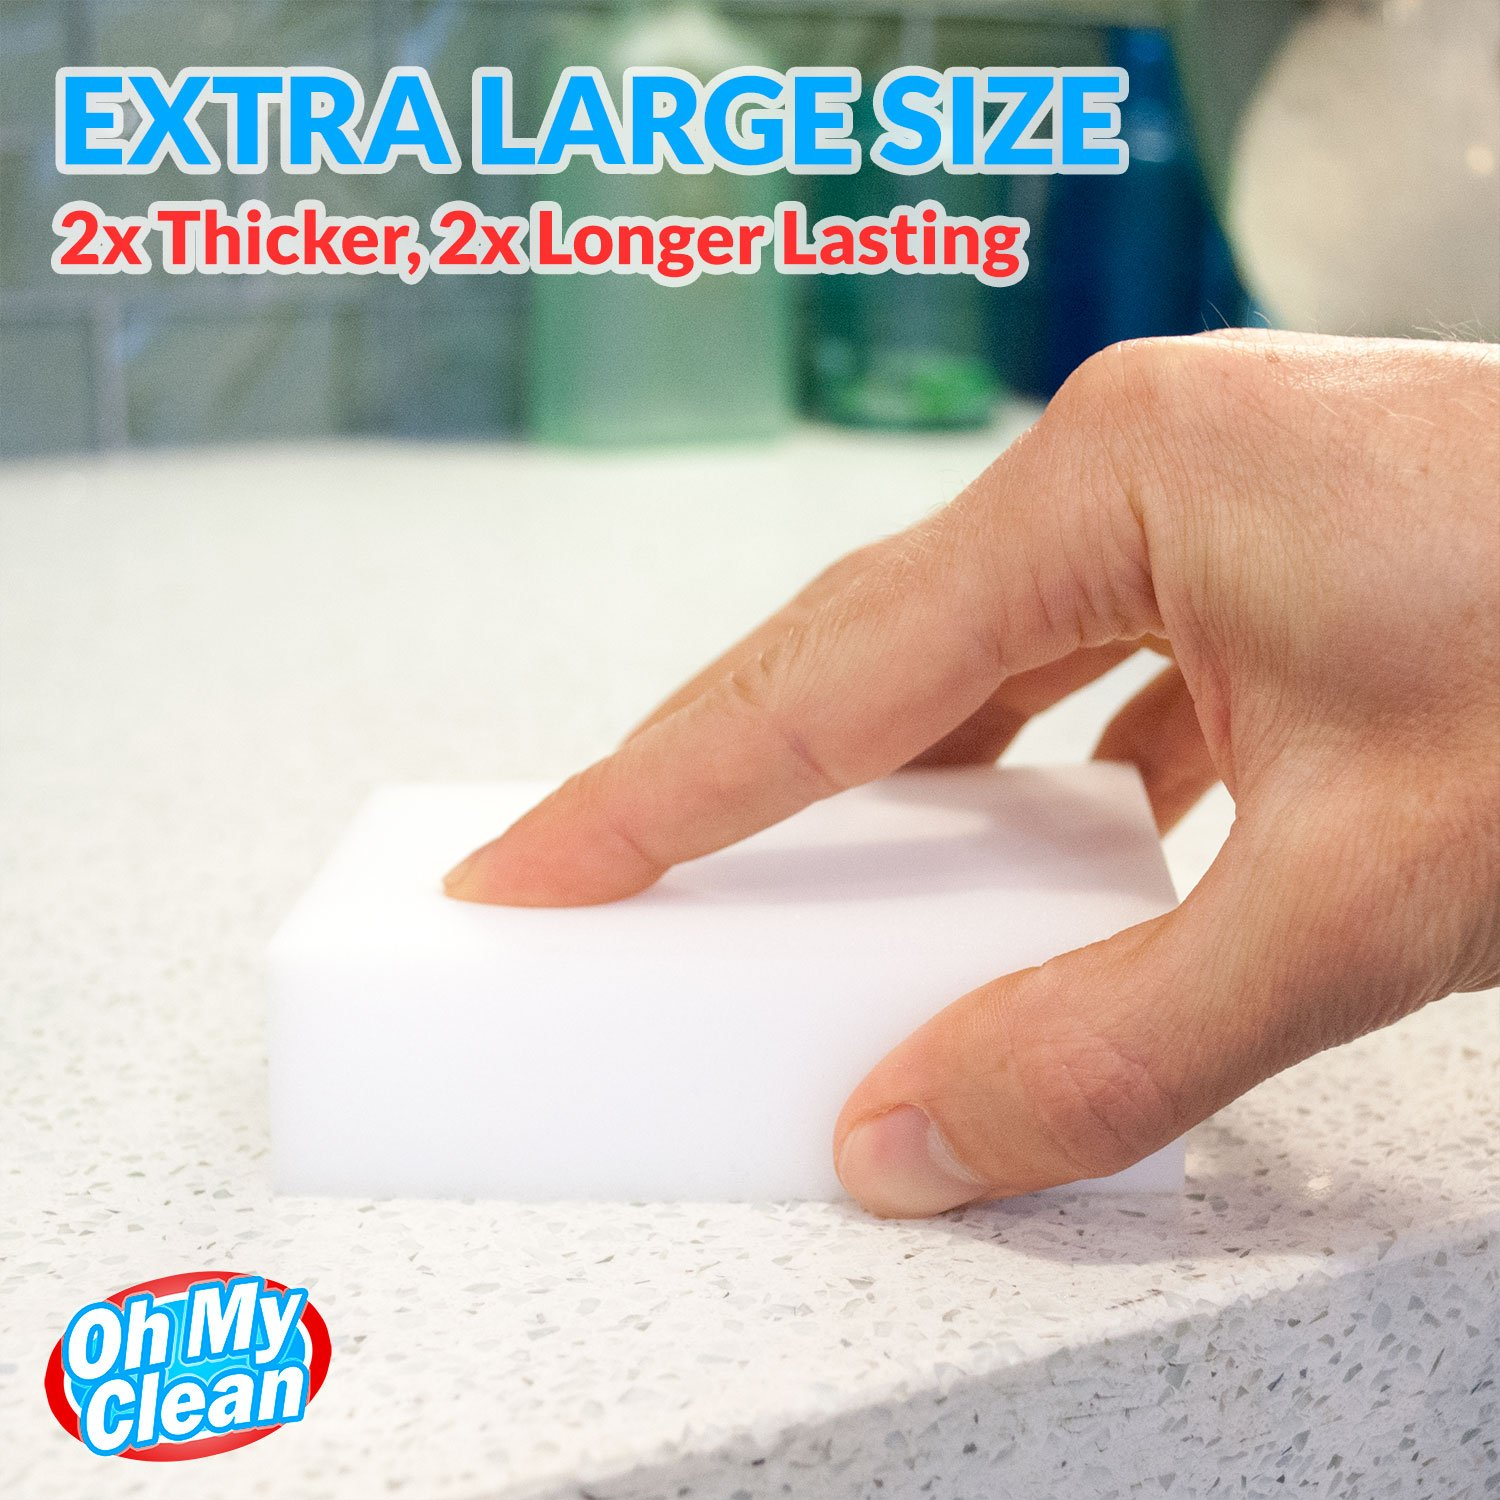 (40 Pack) Extra Large Magic Cleaning Eraser Sponge - 2X Thick, 2X Longer Lasting Melamine Sponges in Bulk - Multi Surface Power Scrubber Foam Pads - Bathtub, Floor, Baseboard, Bathroom, Wall Cleaner by Oh My Clean (Image #4)